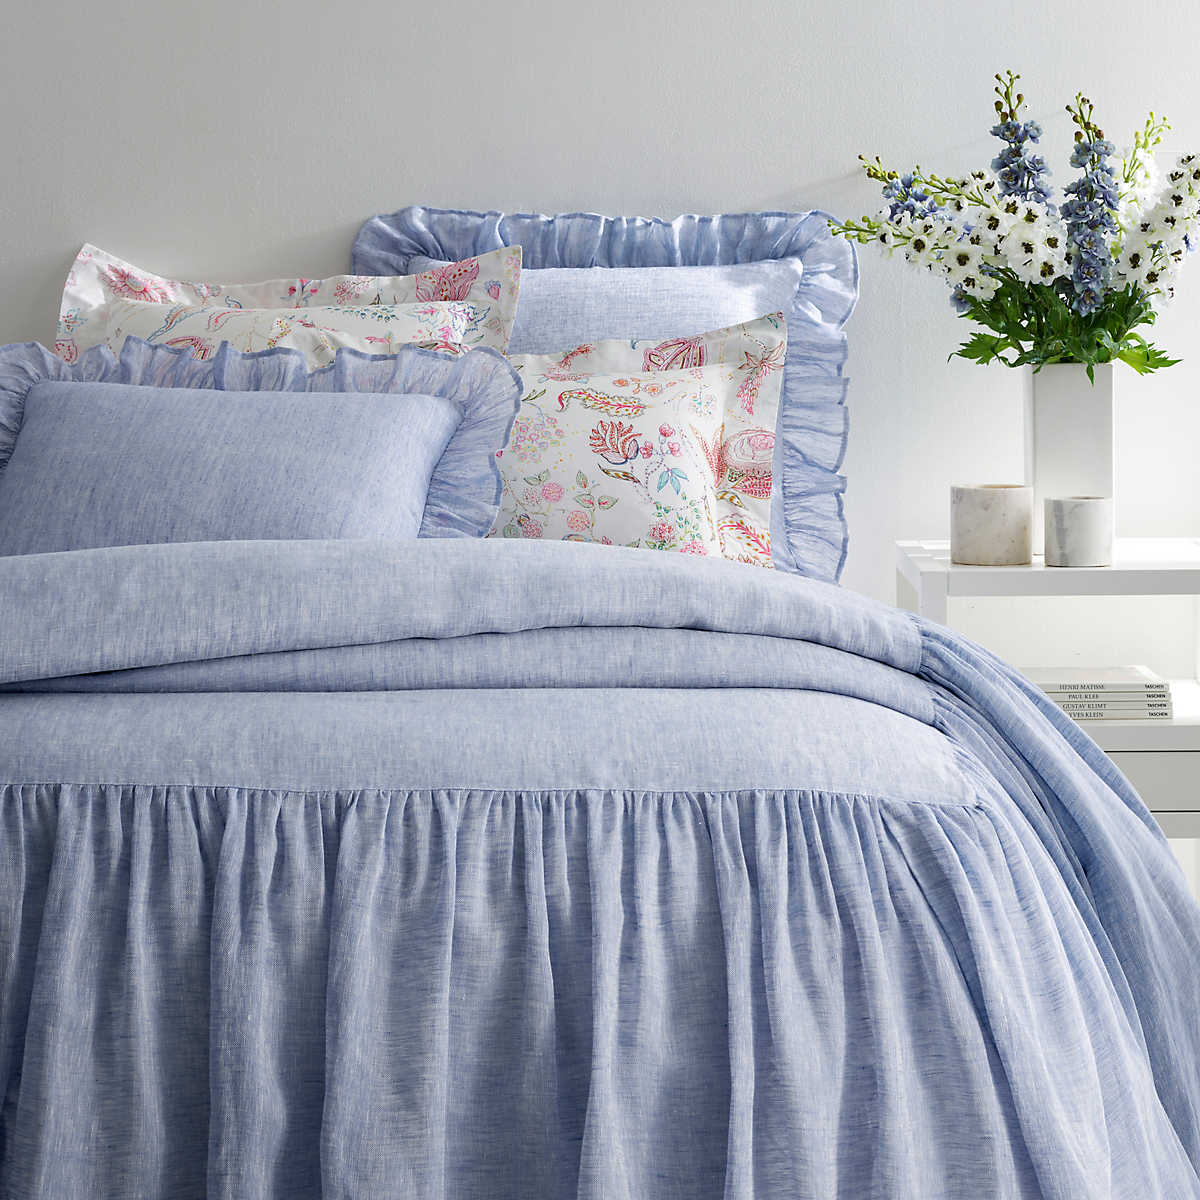 Savannah Linen Chambray French Blue Bedspread | Pine Cone Hill